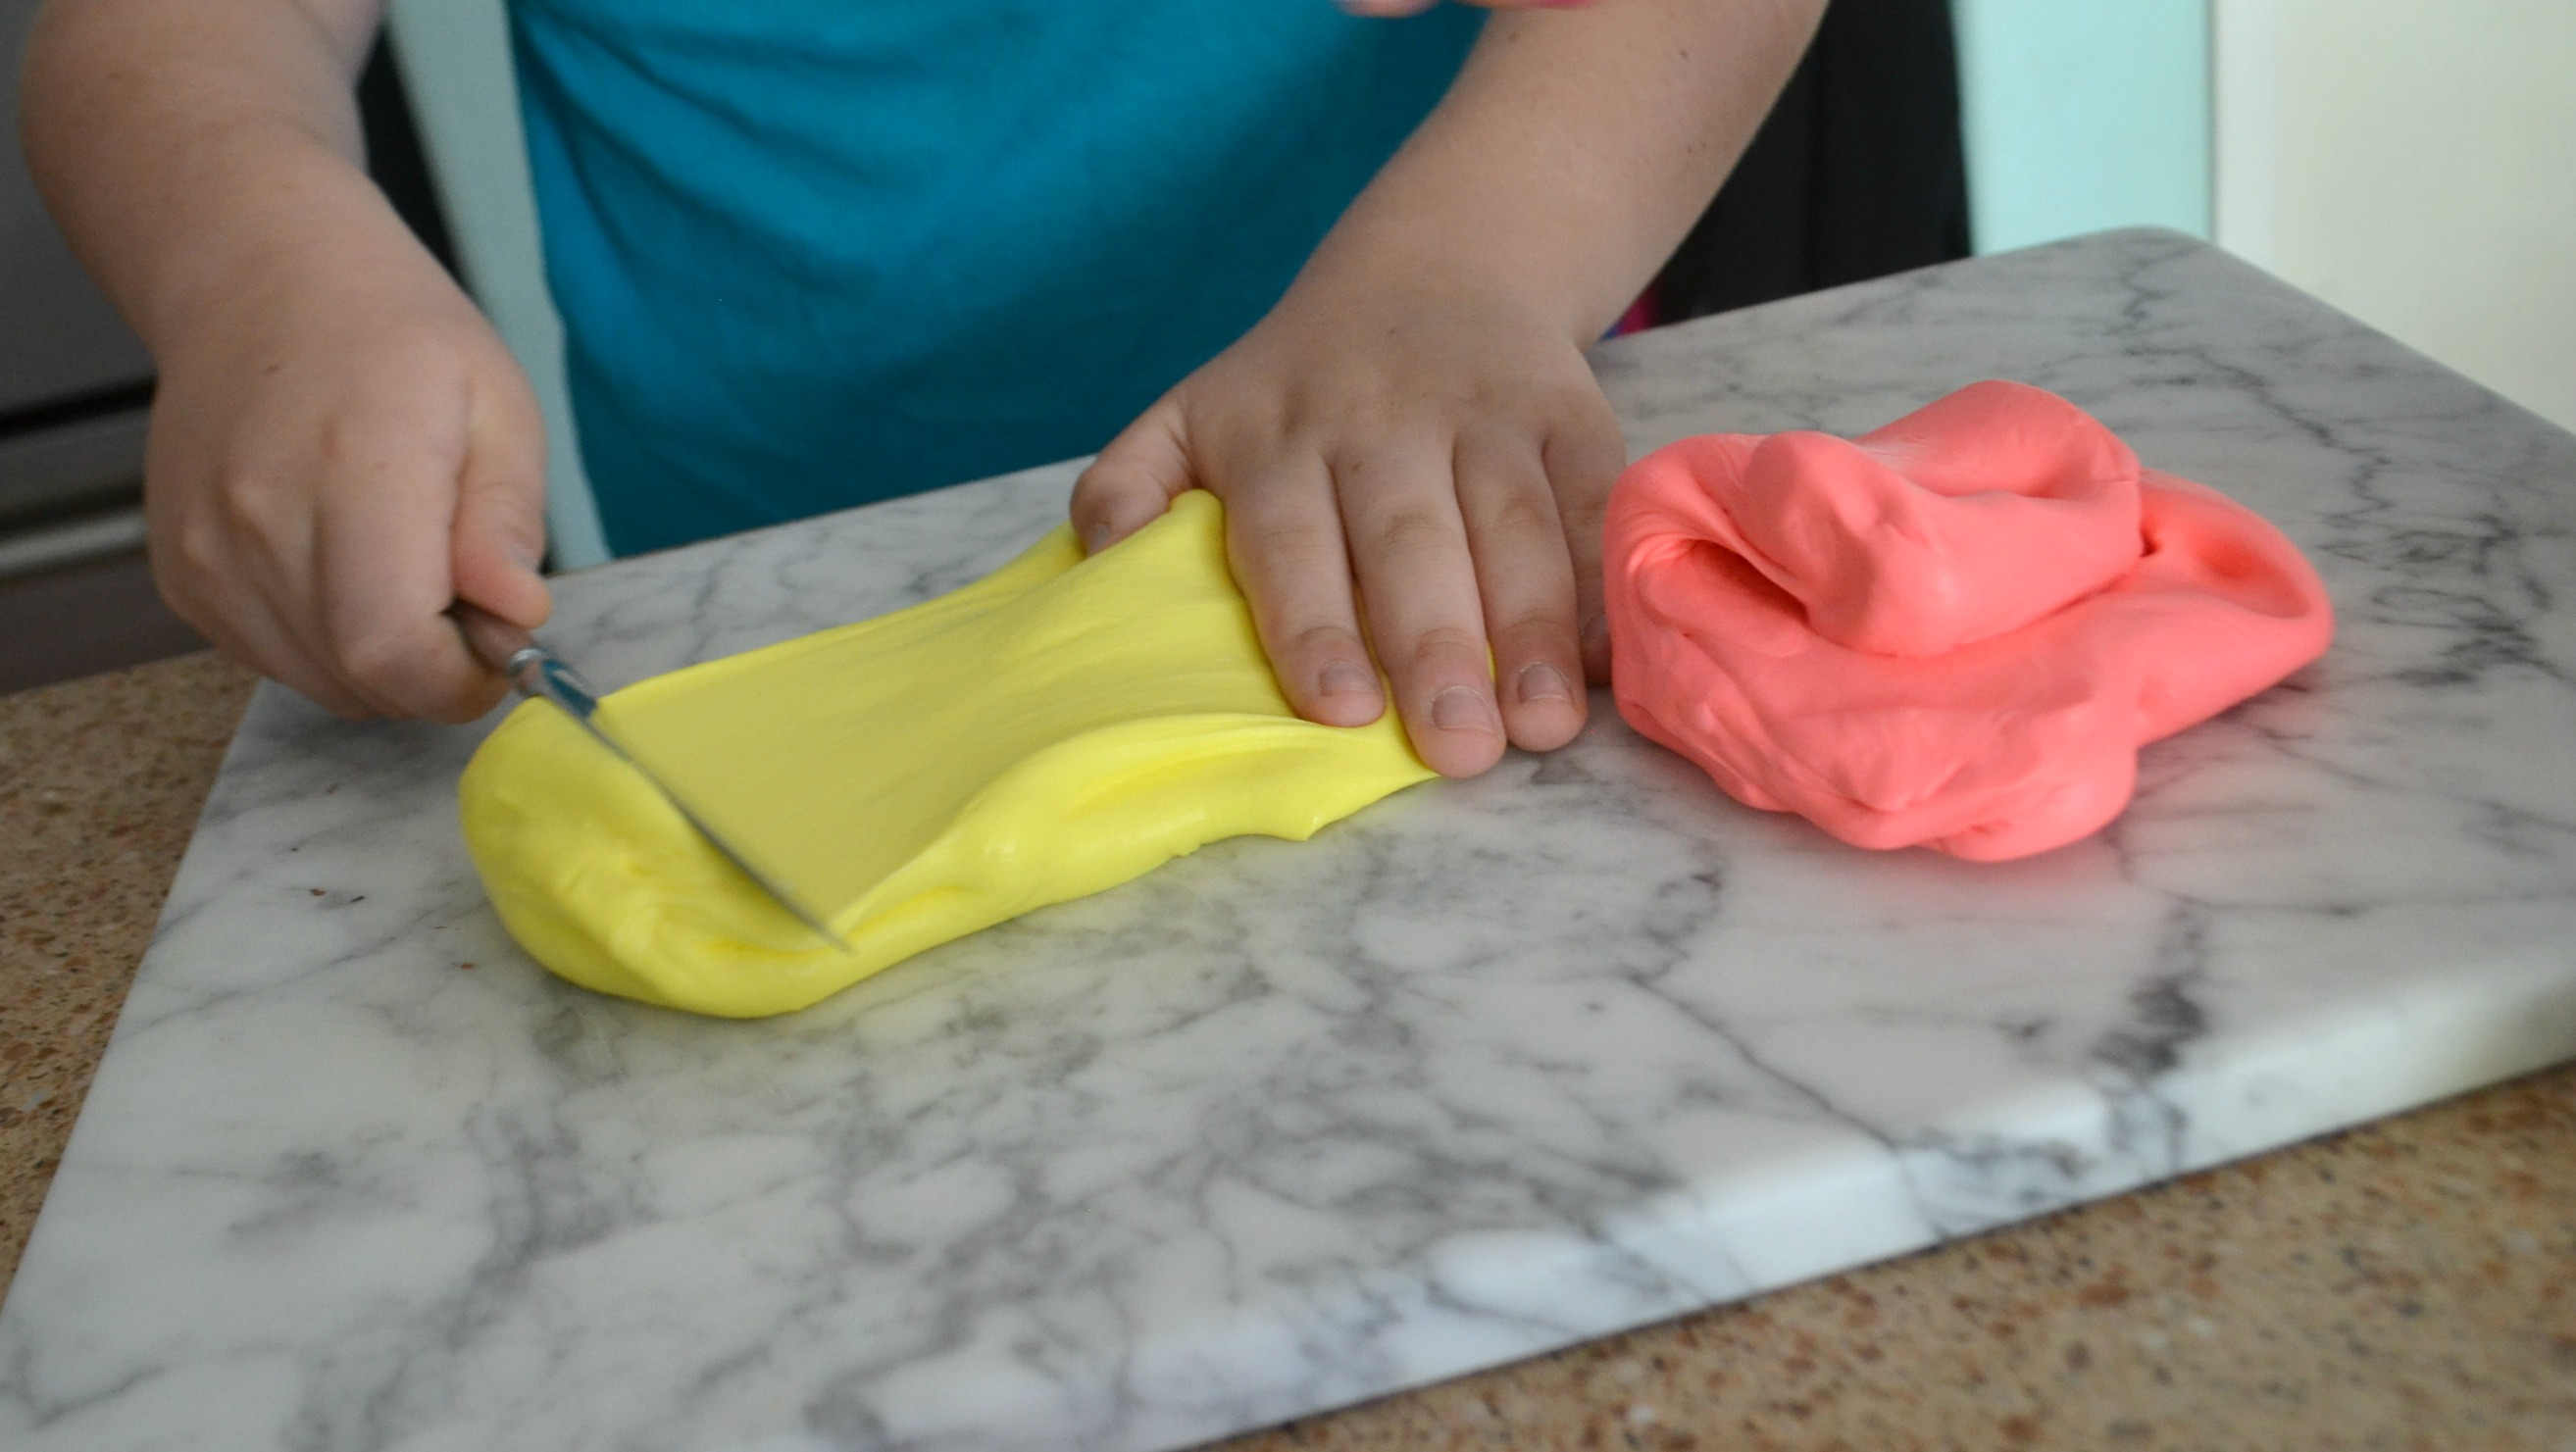 Make diy butter slime using clay – Two examples of the slime